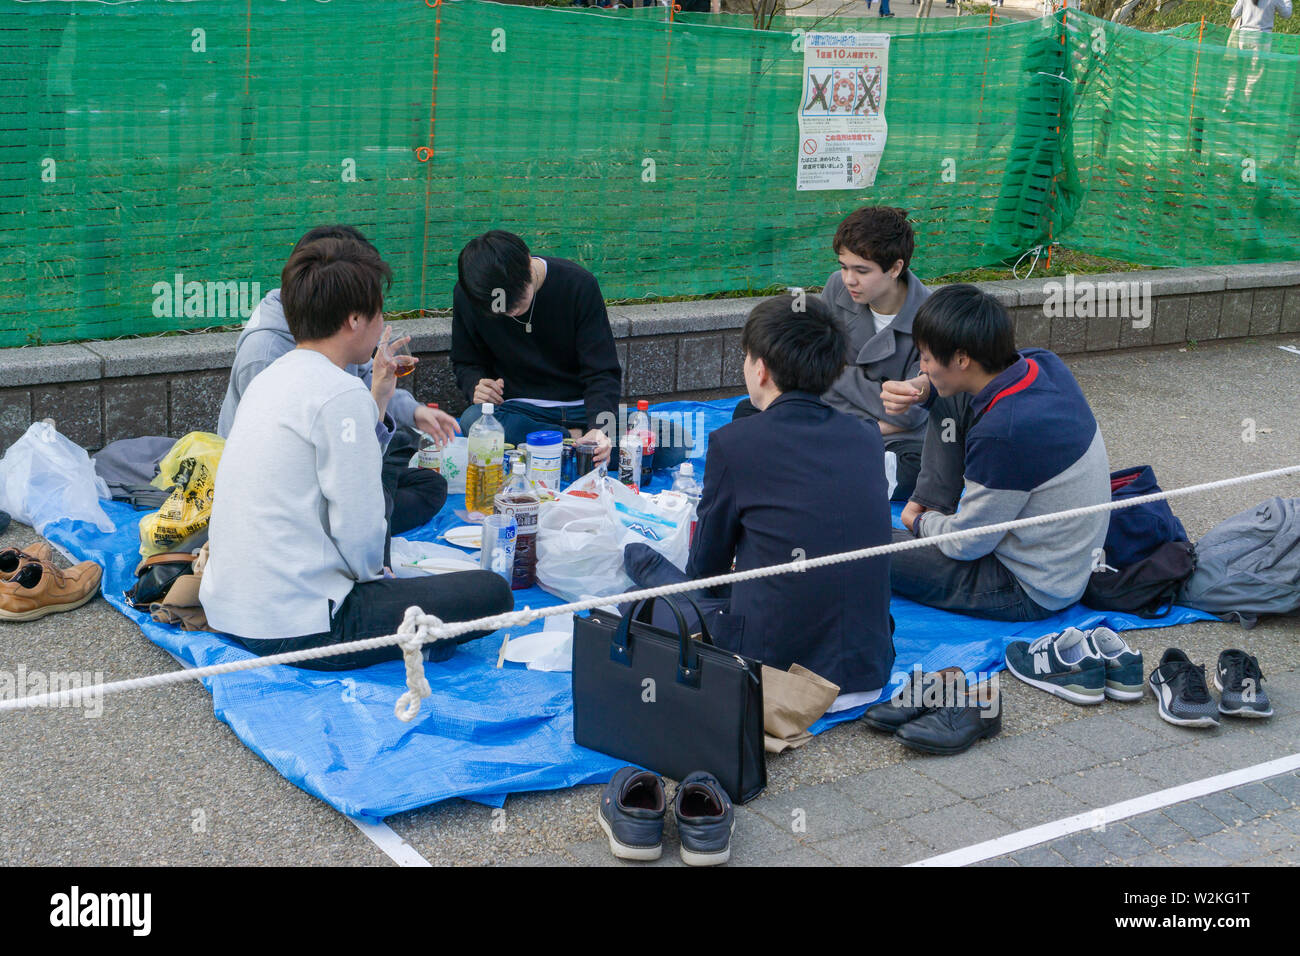 There are groups of people having picnics all over Ueno Park. There are special areas reserved for 'picnickers'. It is a popular activity at Ueno Park. - Stock Image